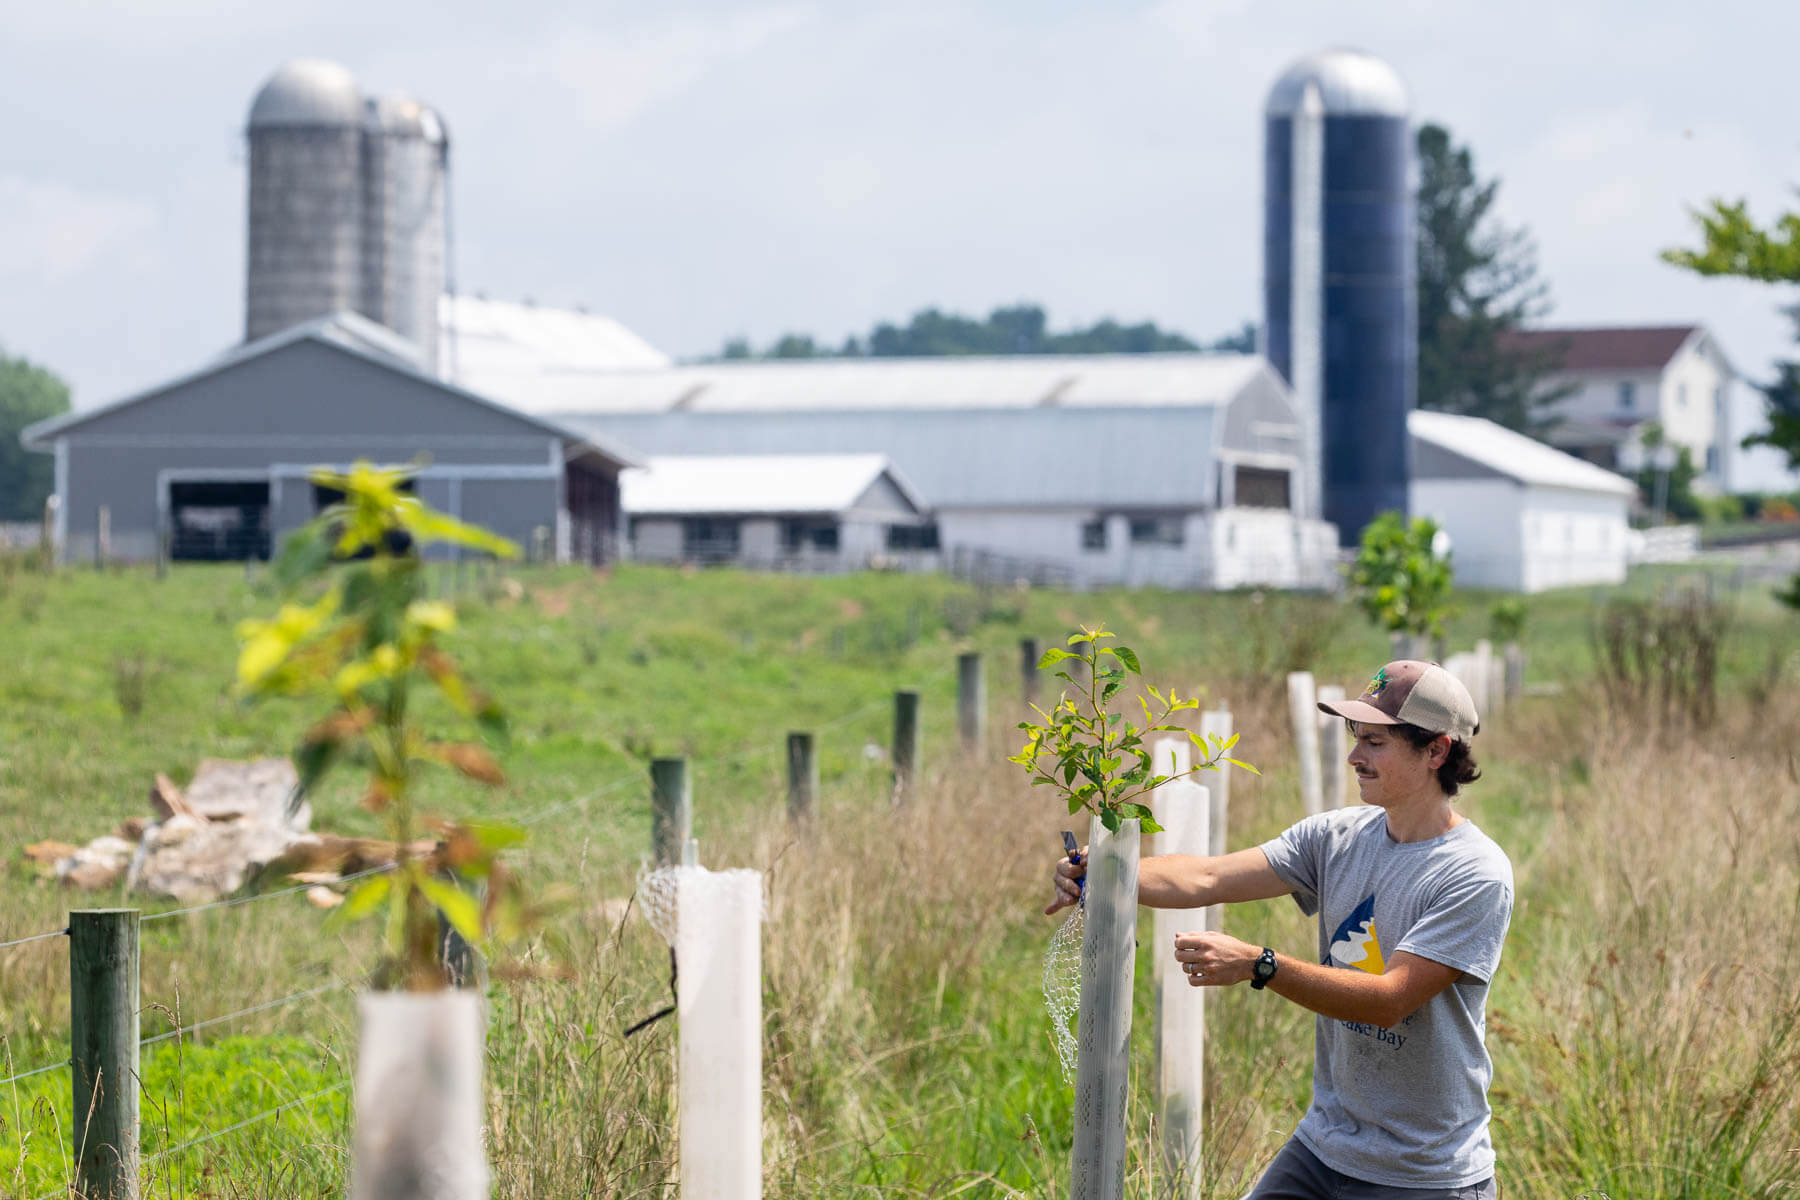 Ryan Davis of the Alliance for the Chesapeake Bay planting trees on a farm.